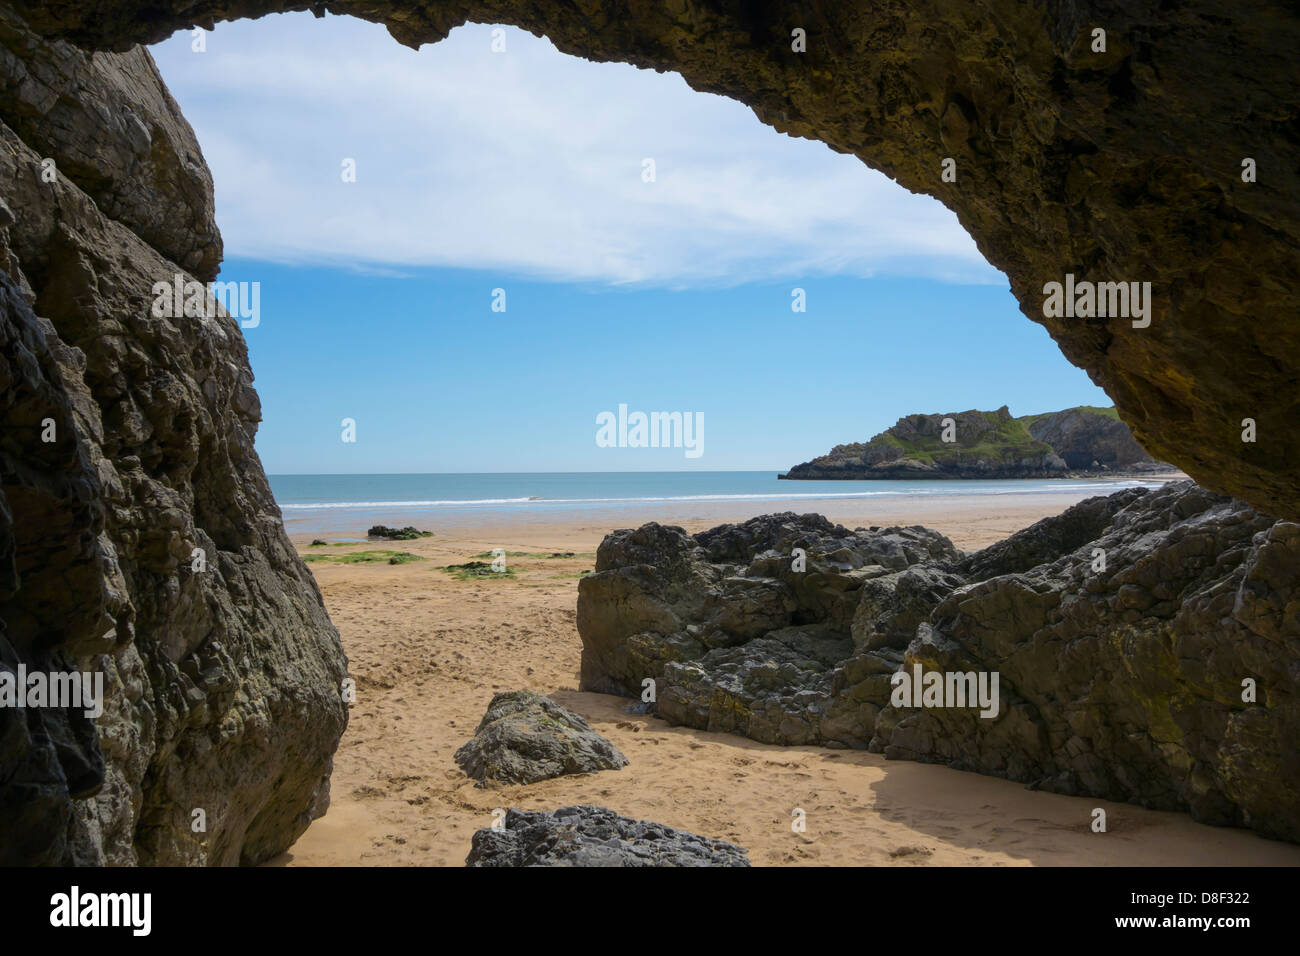 View of Broad Haven Beach from inside of a cave, at Bosherston, on the Pembrokeshire Coast National Park. - Stock Image